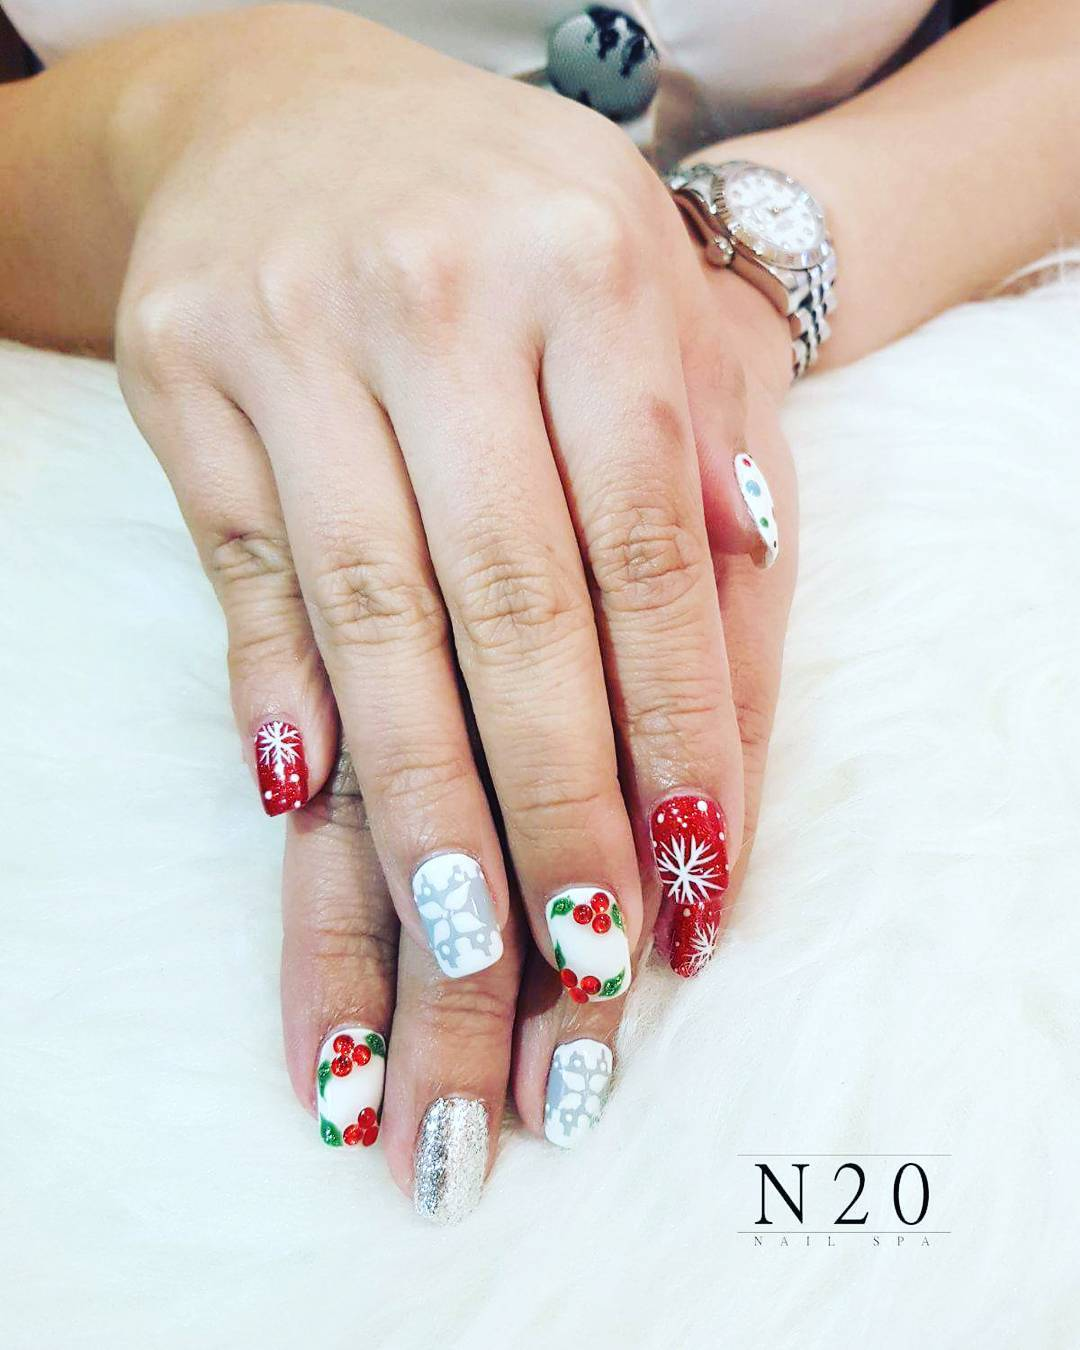 Christmas Festive Nail Art White Snow Flakes N20 Nail Spa